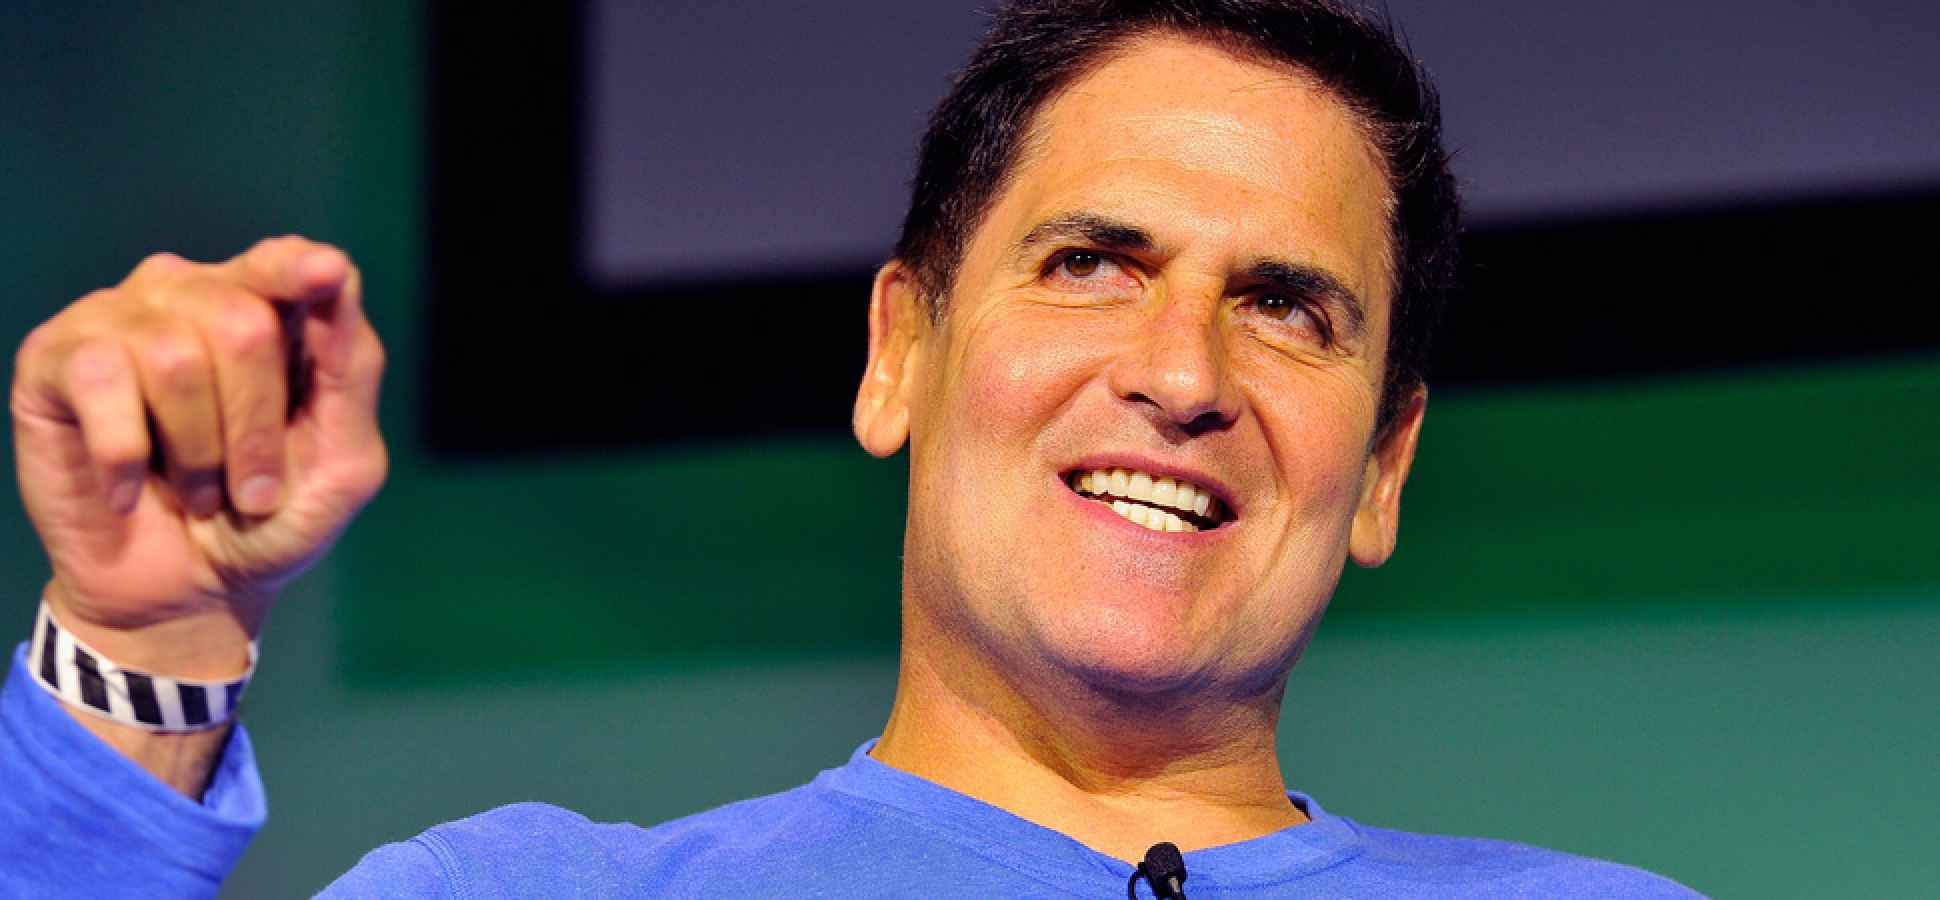 Mark Cuban Shares the Most Important Lesson He Learned in His 20s